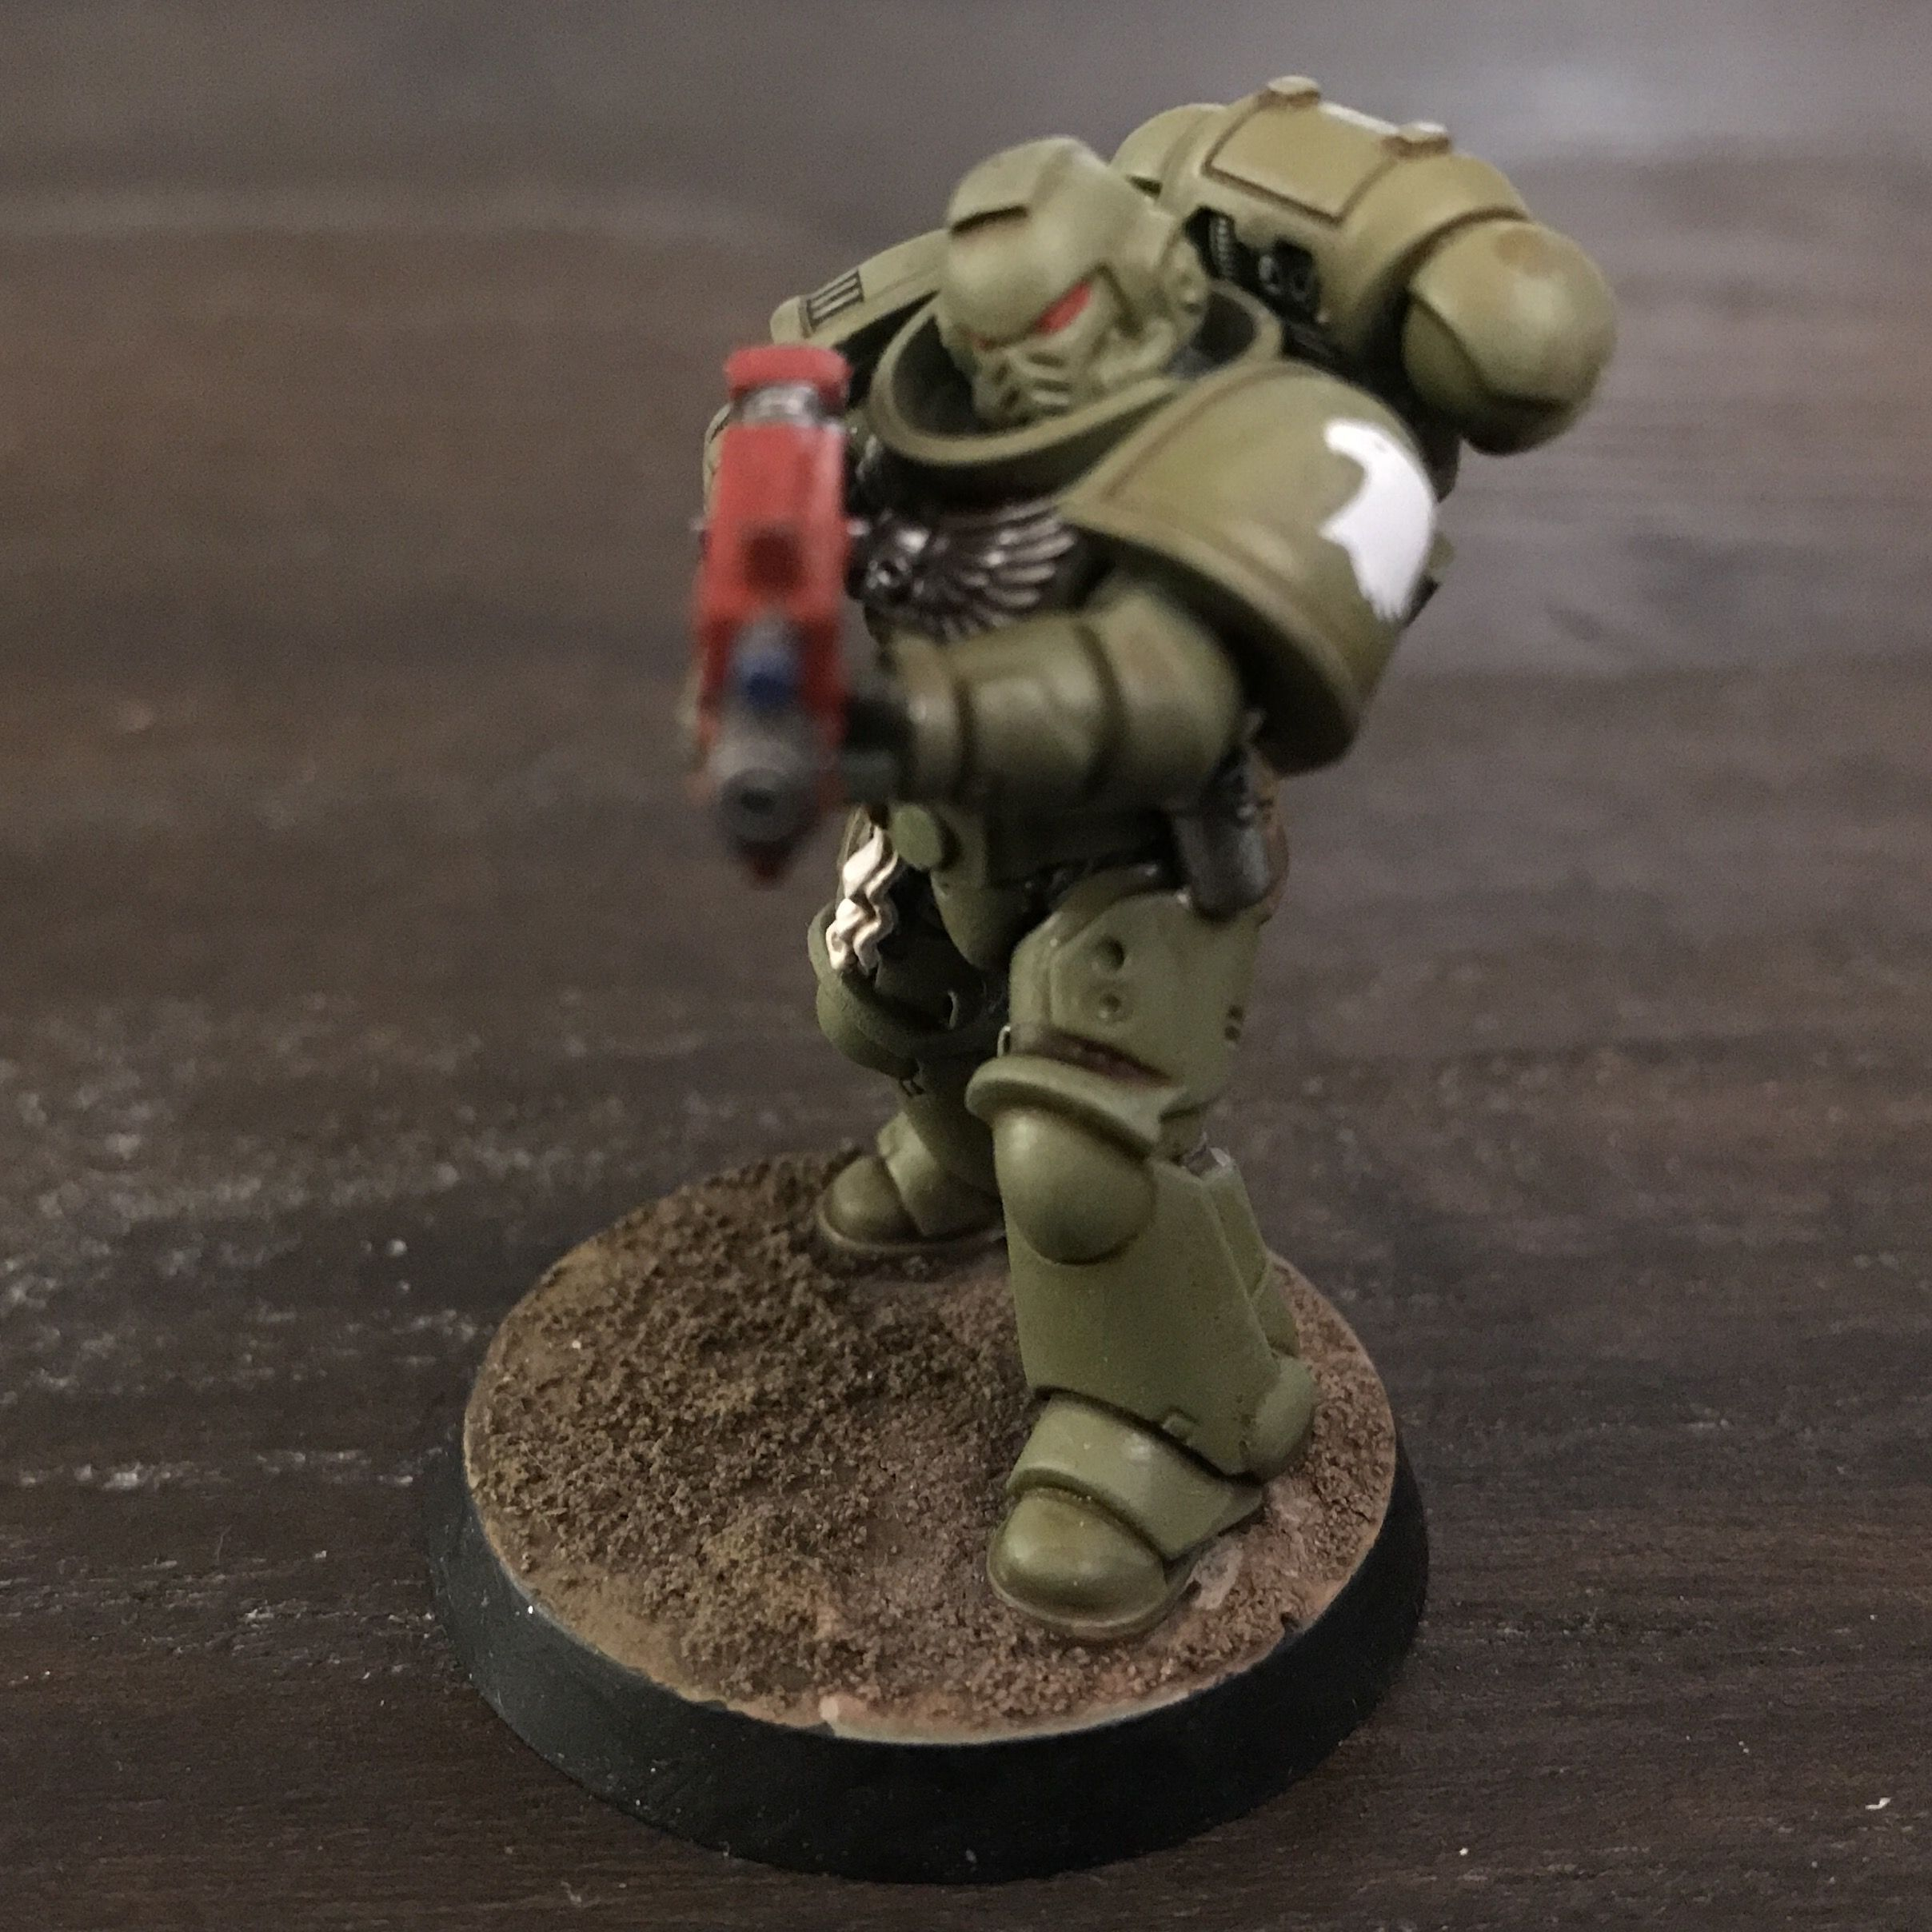 My first primaris marine and Raptor  Epic chapter | Not